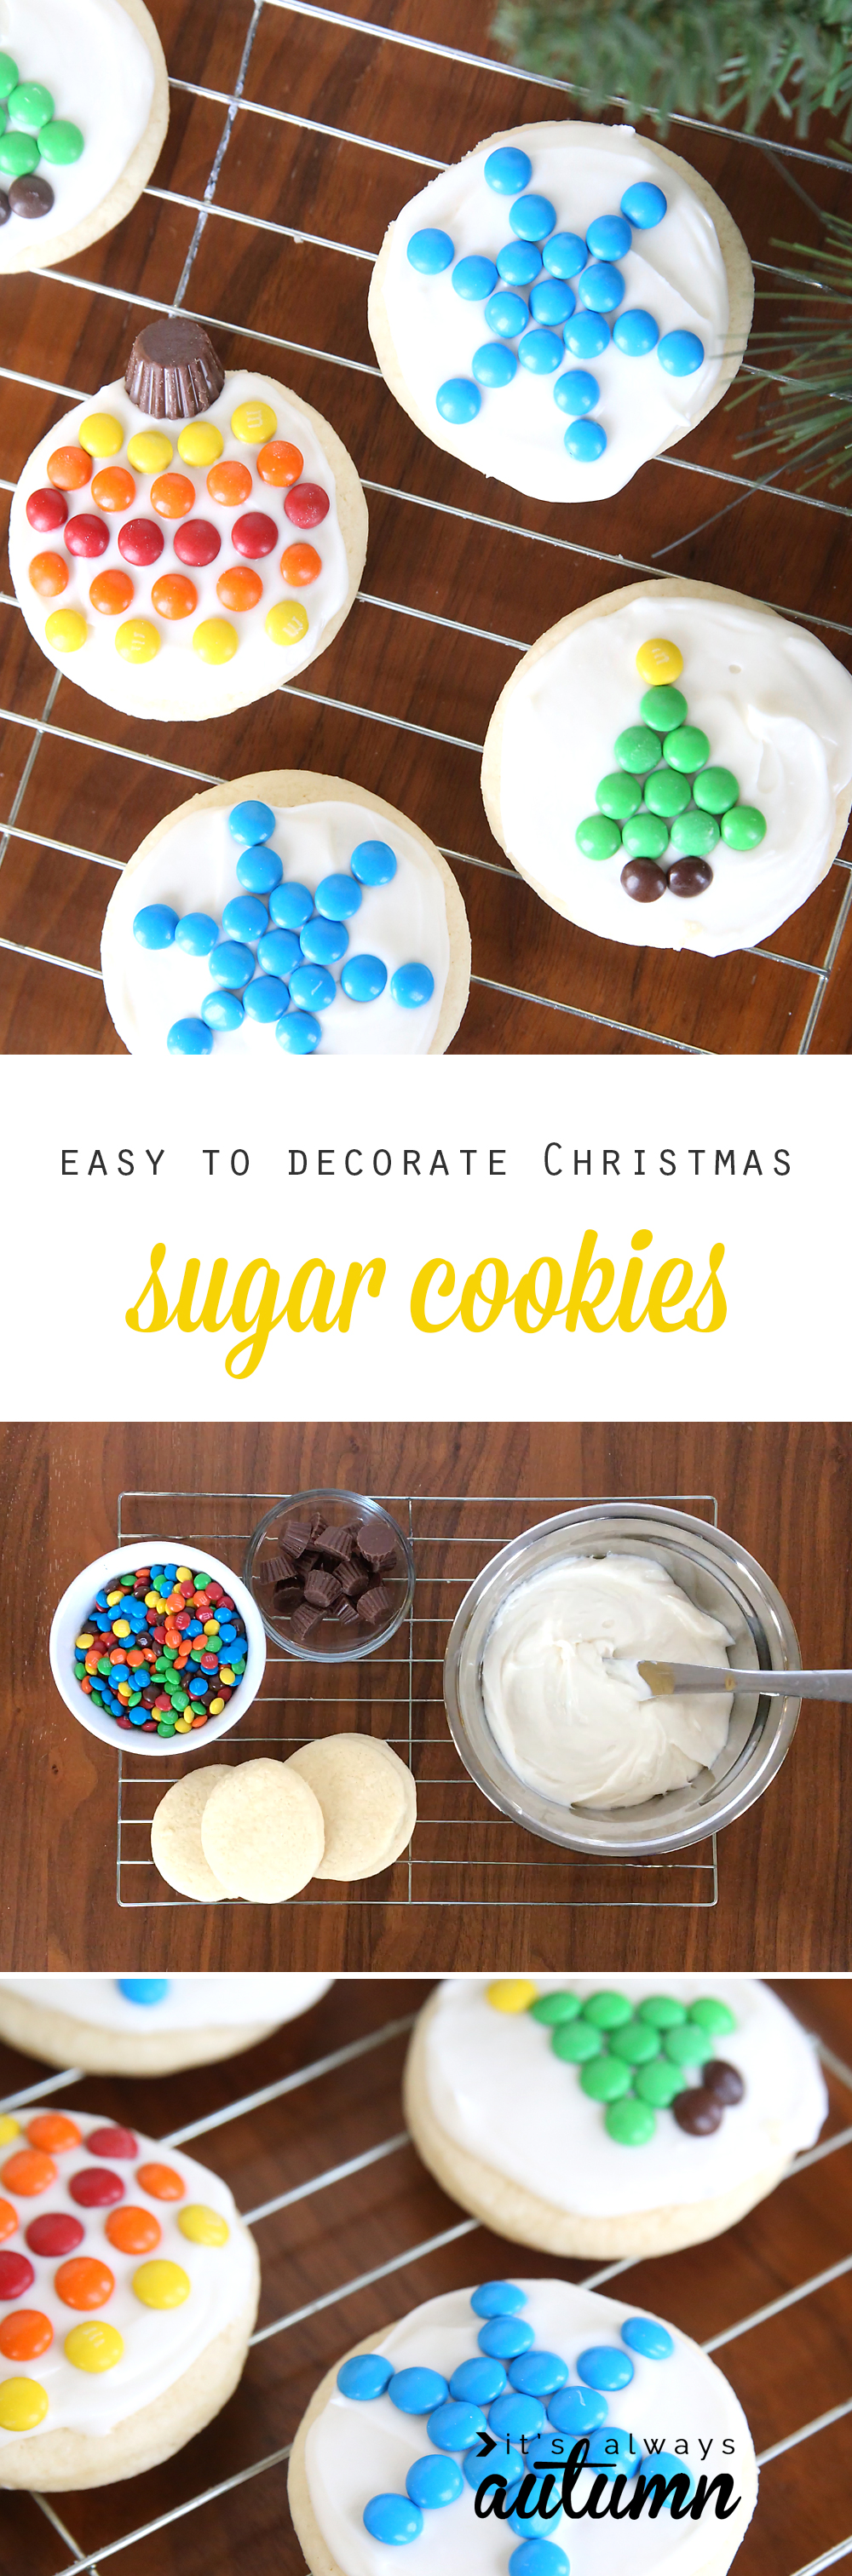 Sugar Cookies For Christmas Decorating